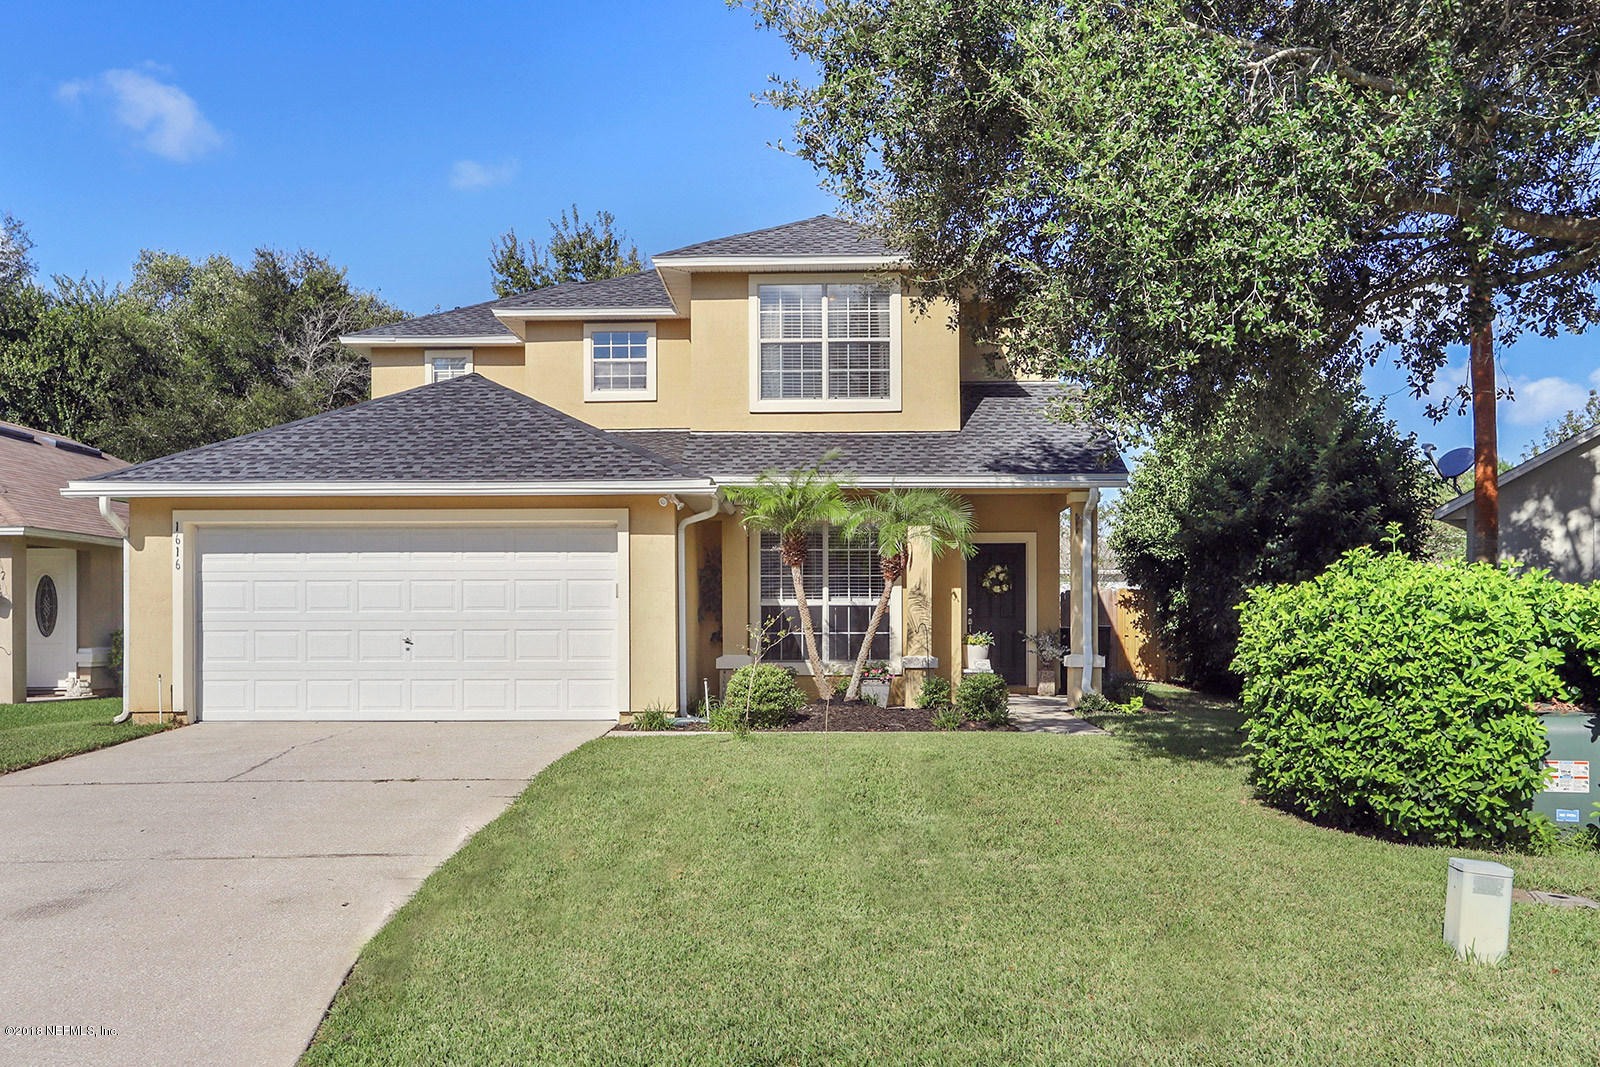 1616 CHRISTINE, ST JOHNS, FLORIDA 32259, 4 Bedrooms Bedrooms, ,2 BathroomsBathrooms,Residential - single family,For sale,CHRISTINE,961121